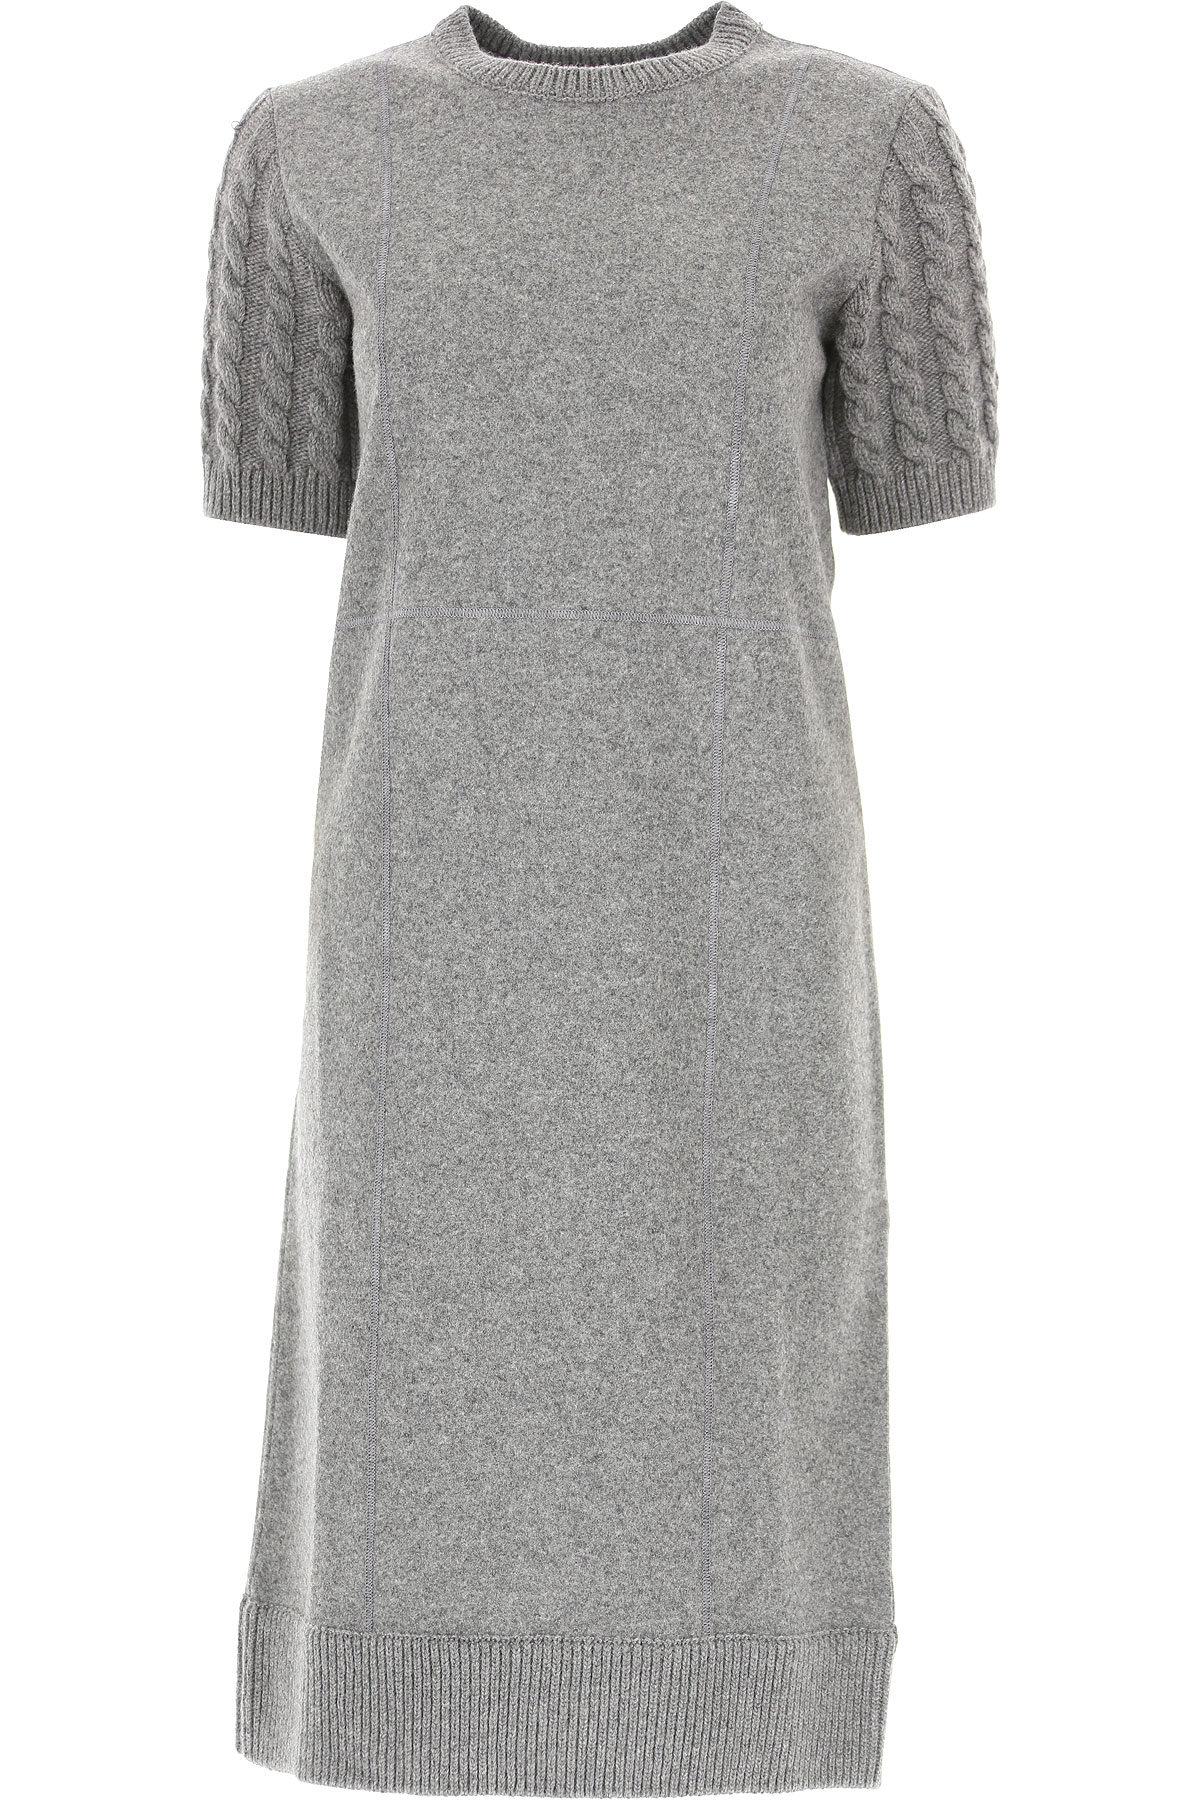 Image of THOM BROWNE Dress for Women, Evening Cocktail Party, Medium Grey, Wool, 2017, 4 6 8